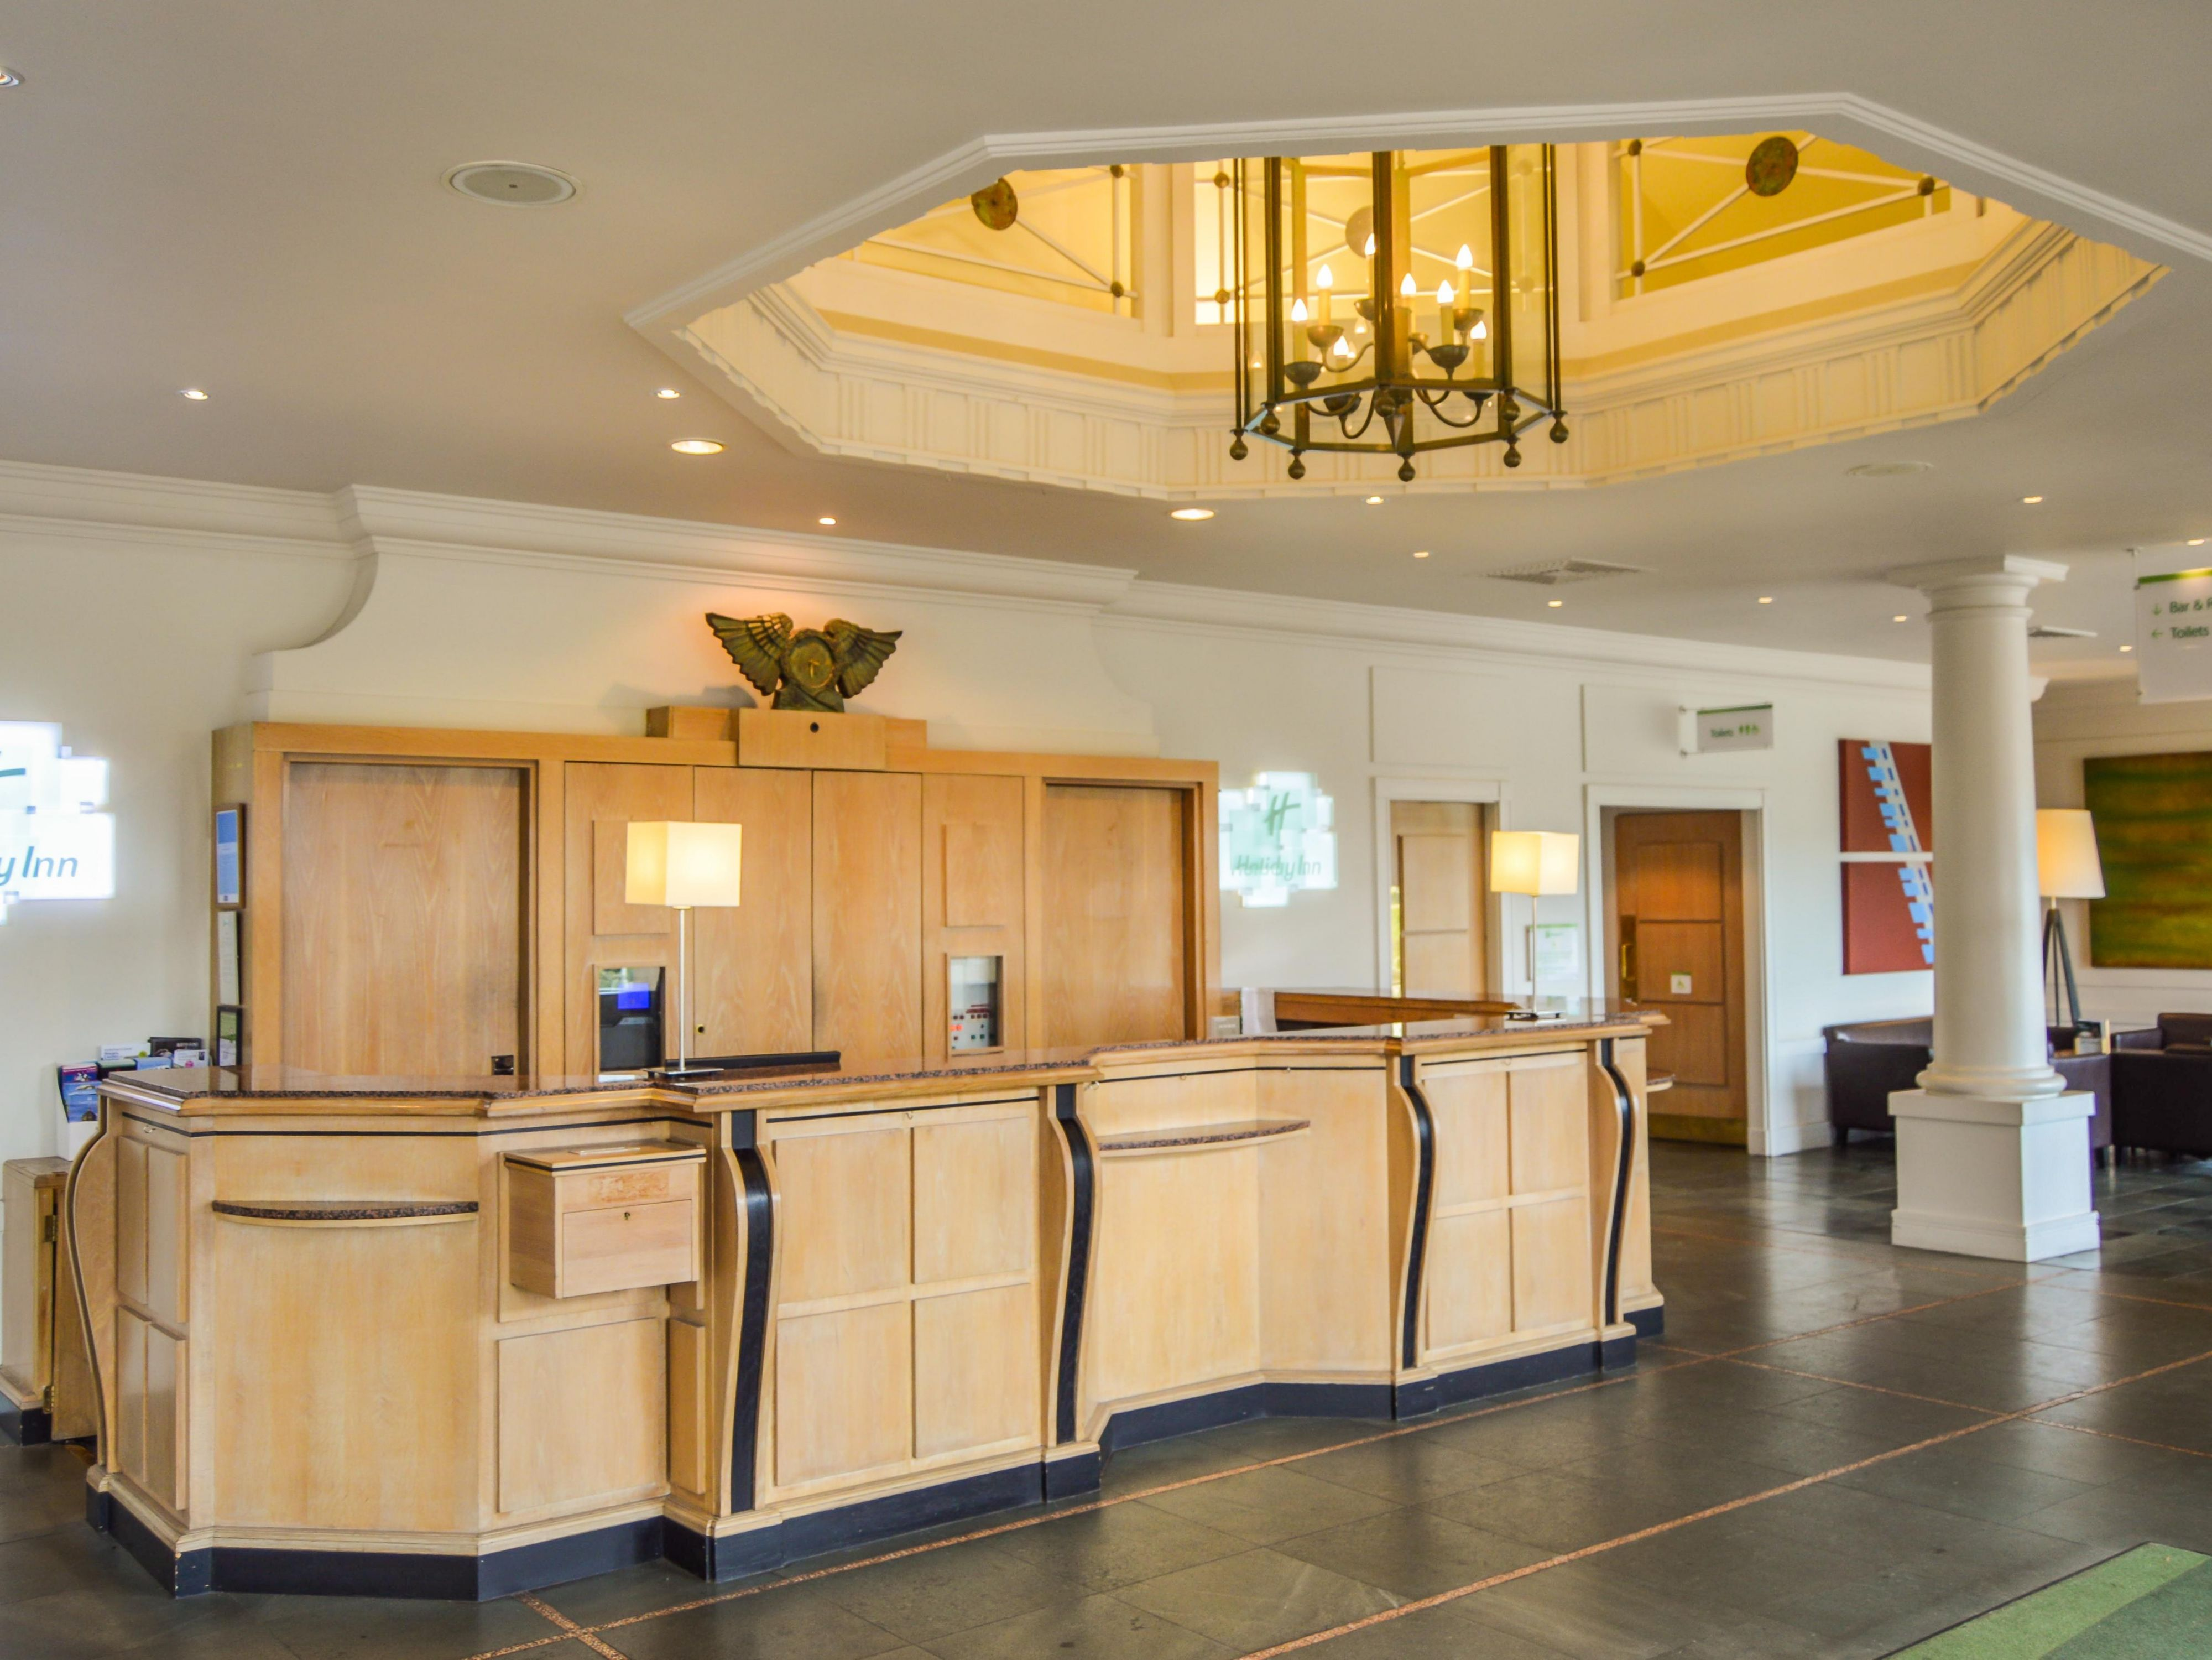 Holiday Inn Reception Desk